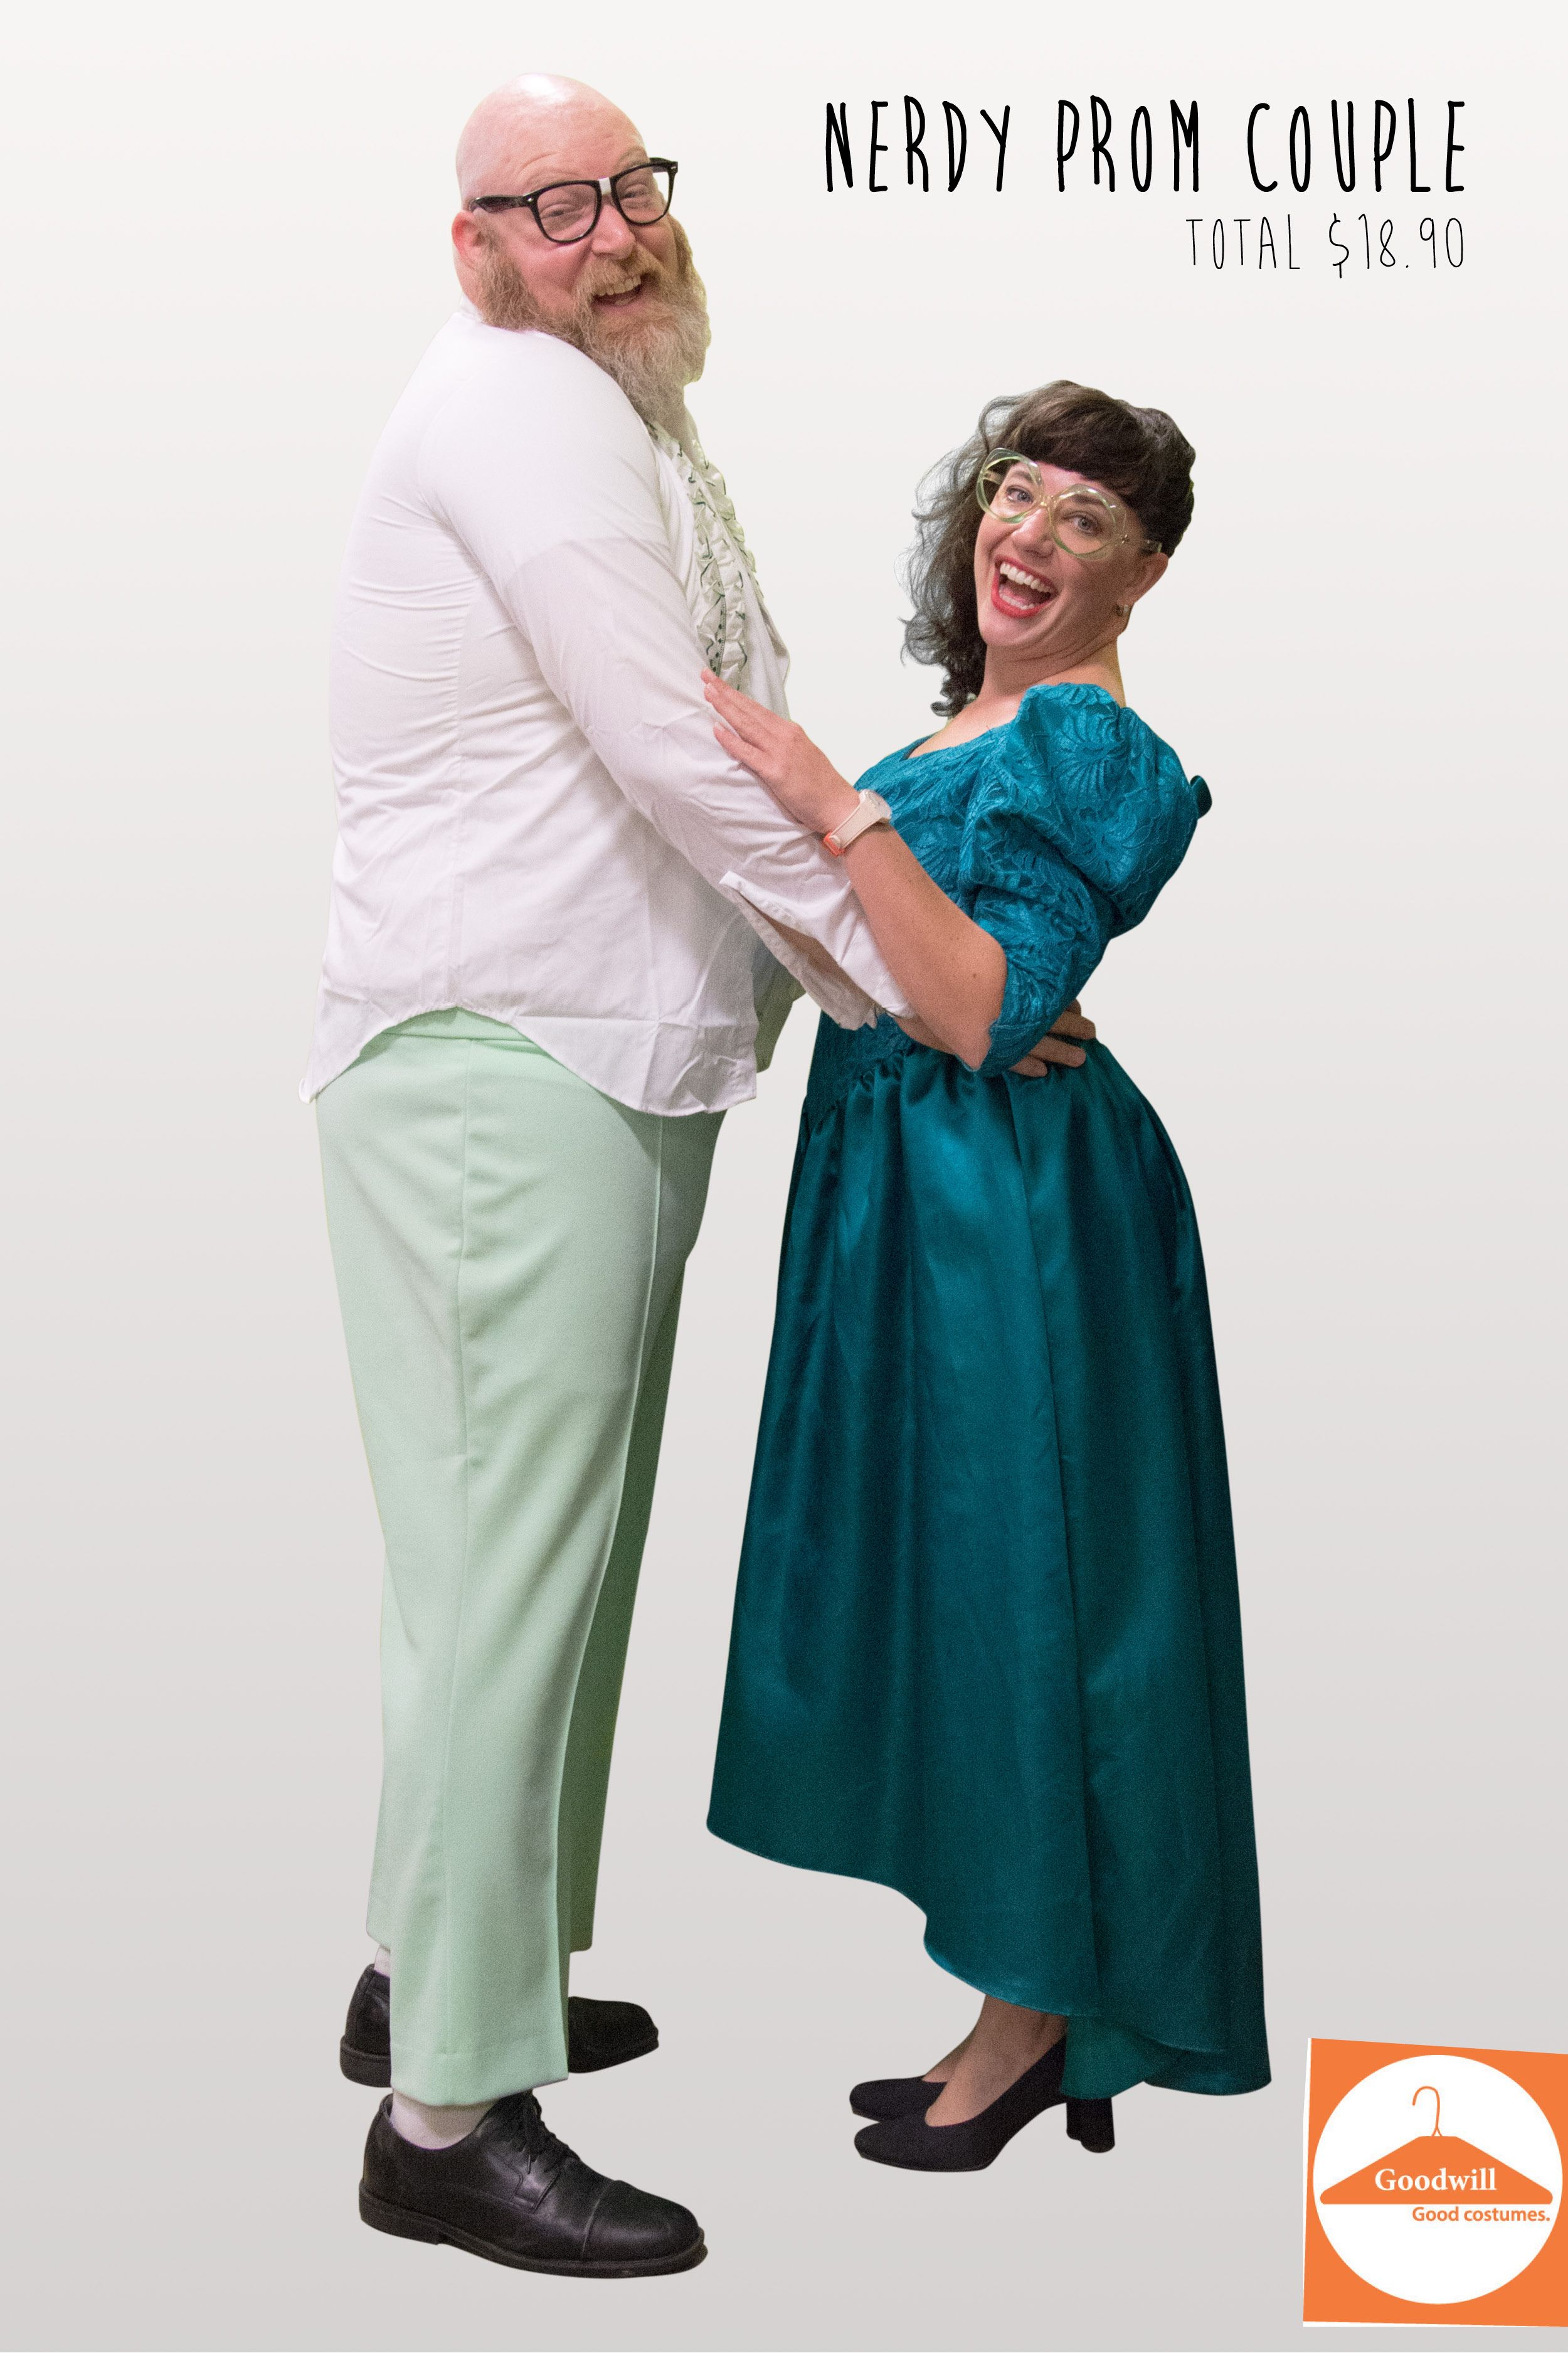 DIY Nerdy Prom Couple from Goodwill finds | DIY Halloween Costume ...